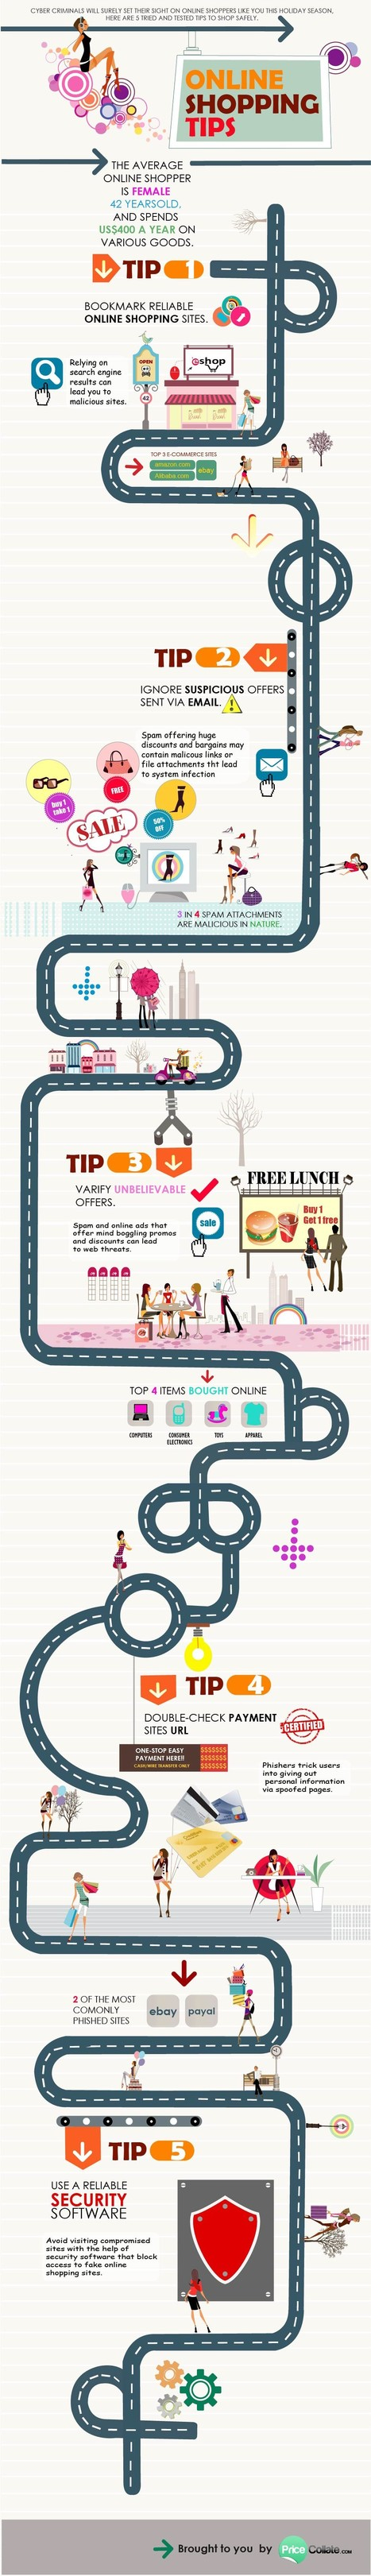 Best Top 5 Unique Ways and Tips to Shop Online Safely | All Infographics | IT security & the usage of social media tools at work | Scoop.it